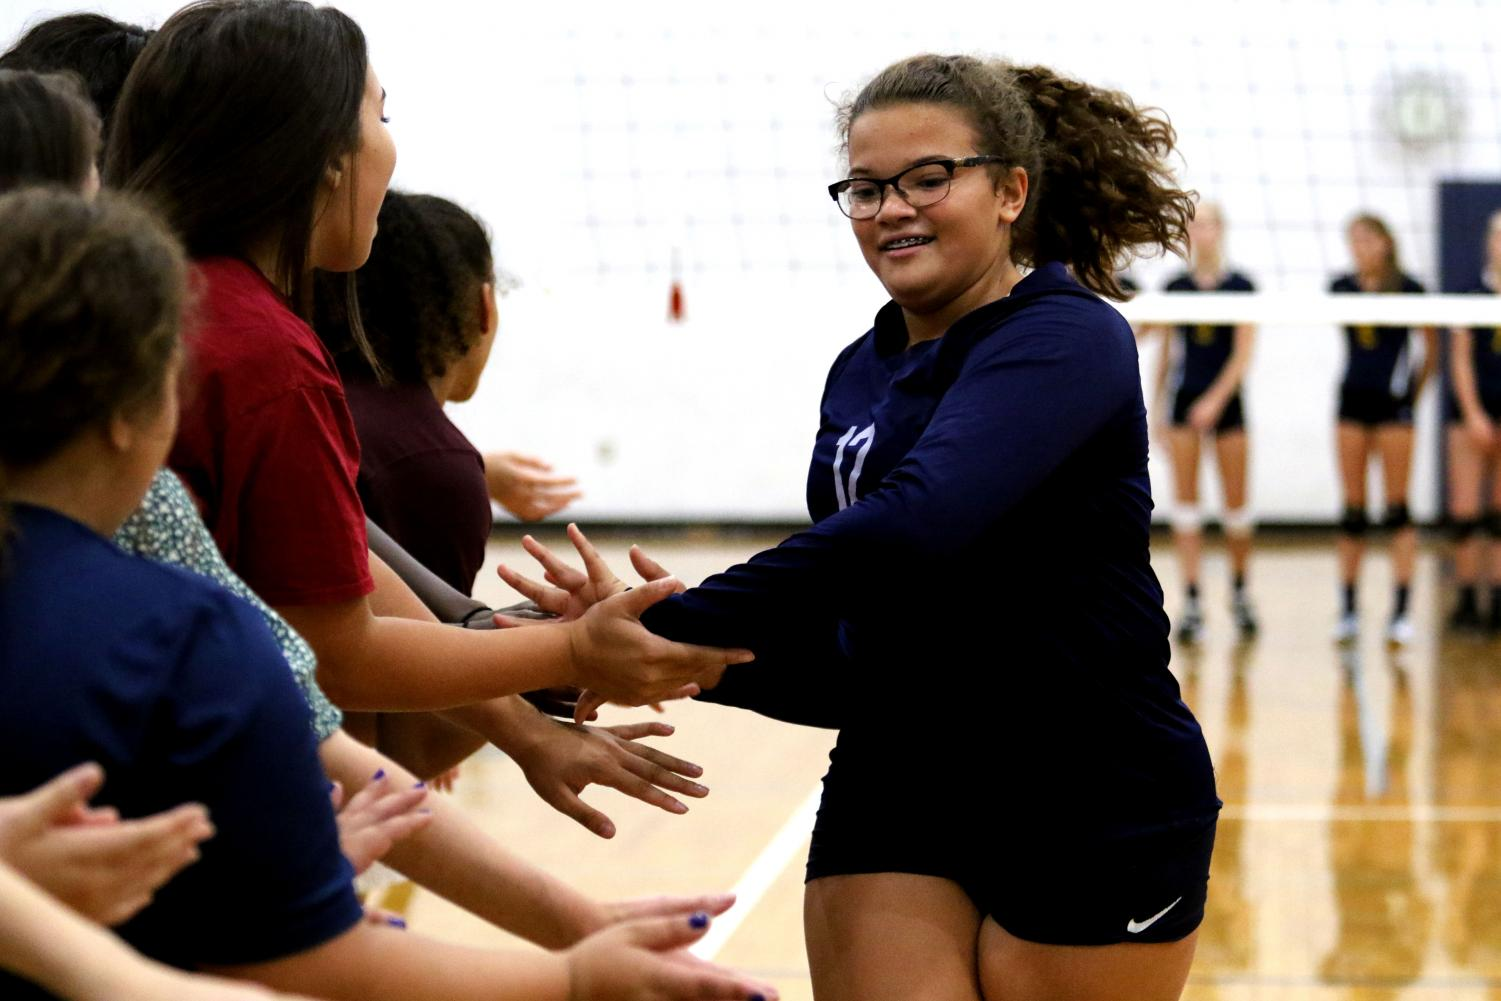 Freshman+Aurora+Lindstrom+gives+high+fives+to+the+varsity+team+prior+to+the+start+of+the+JV+volleyball+game.+